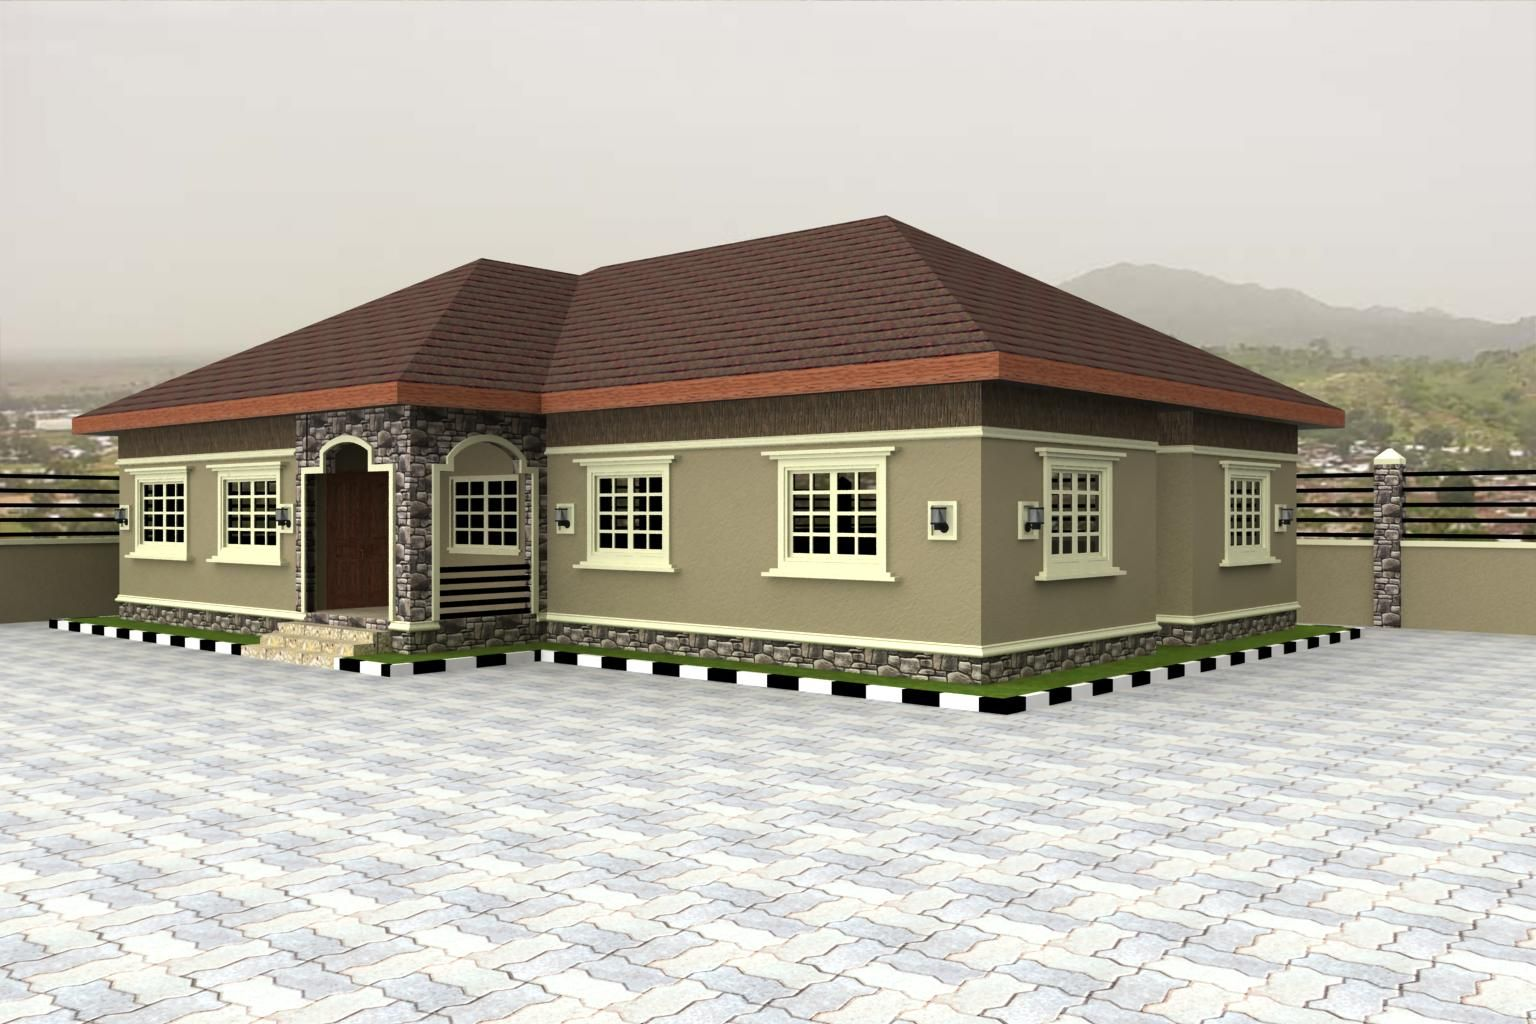 Home plans for bungalows in nigeria properties 4 nairaland house exterior design pinterest - Bungalow house plans with photos ...